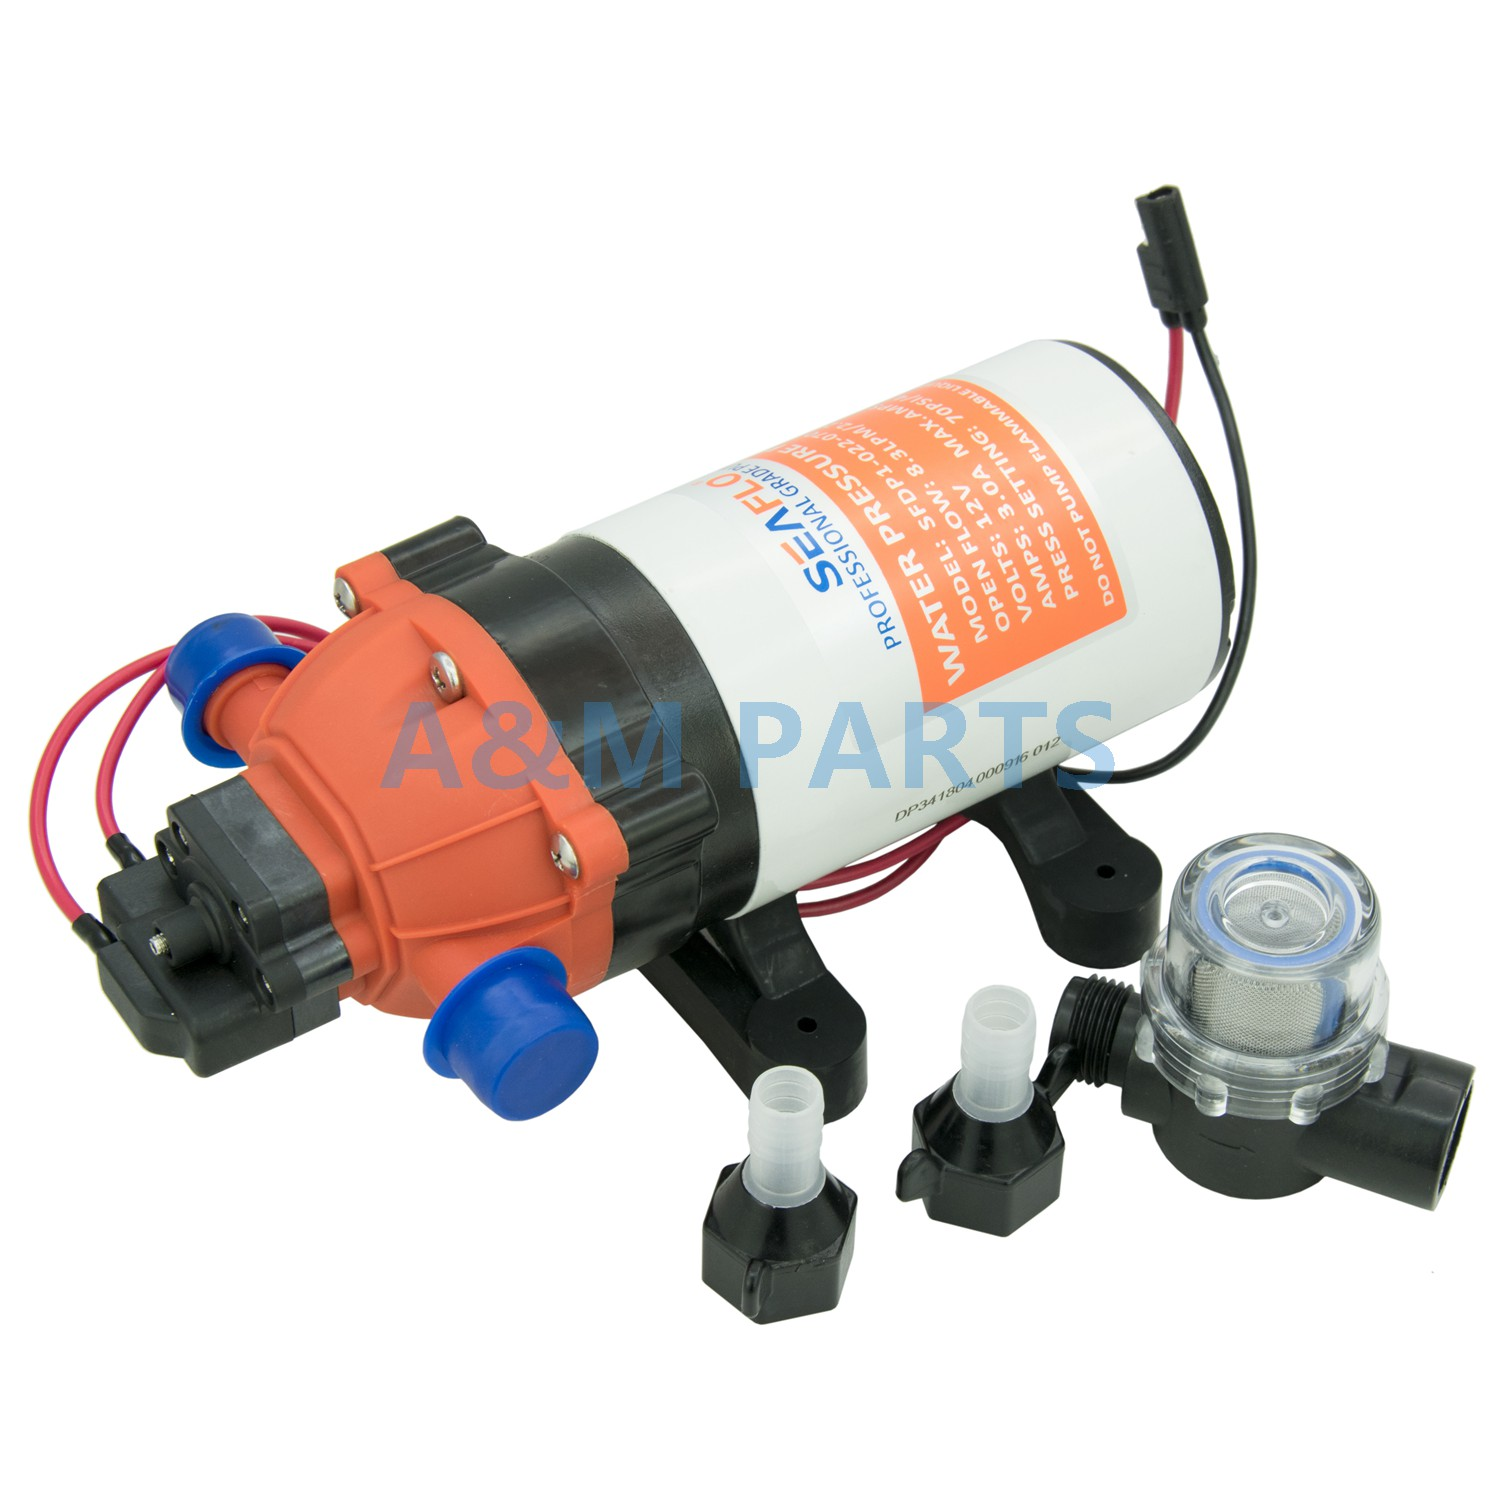 US $84 62 23% OFF|Self Priming Diaphragm Pump Boat Marine RV Diaphragm  Water Pump 12V 70 PSI 2 2 GPM-in Marine Pump from Automobiles & Motorcycles  on